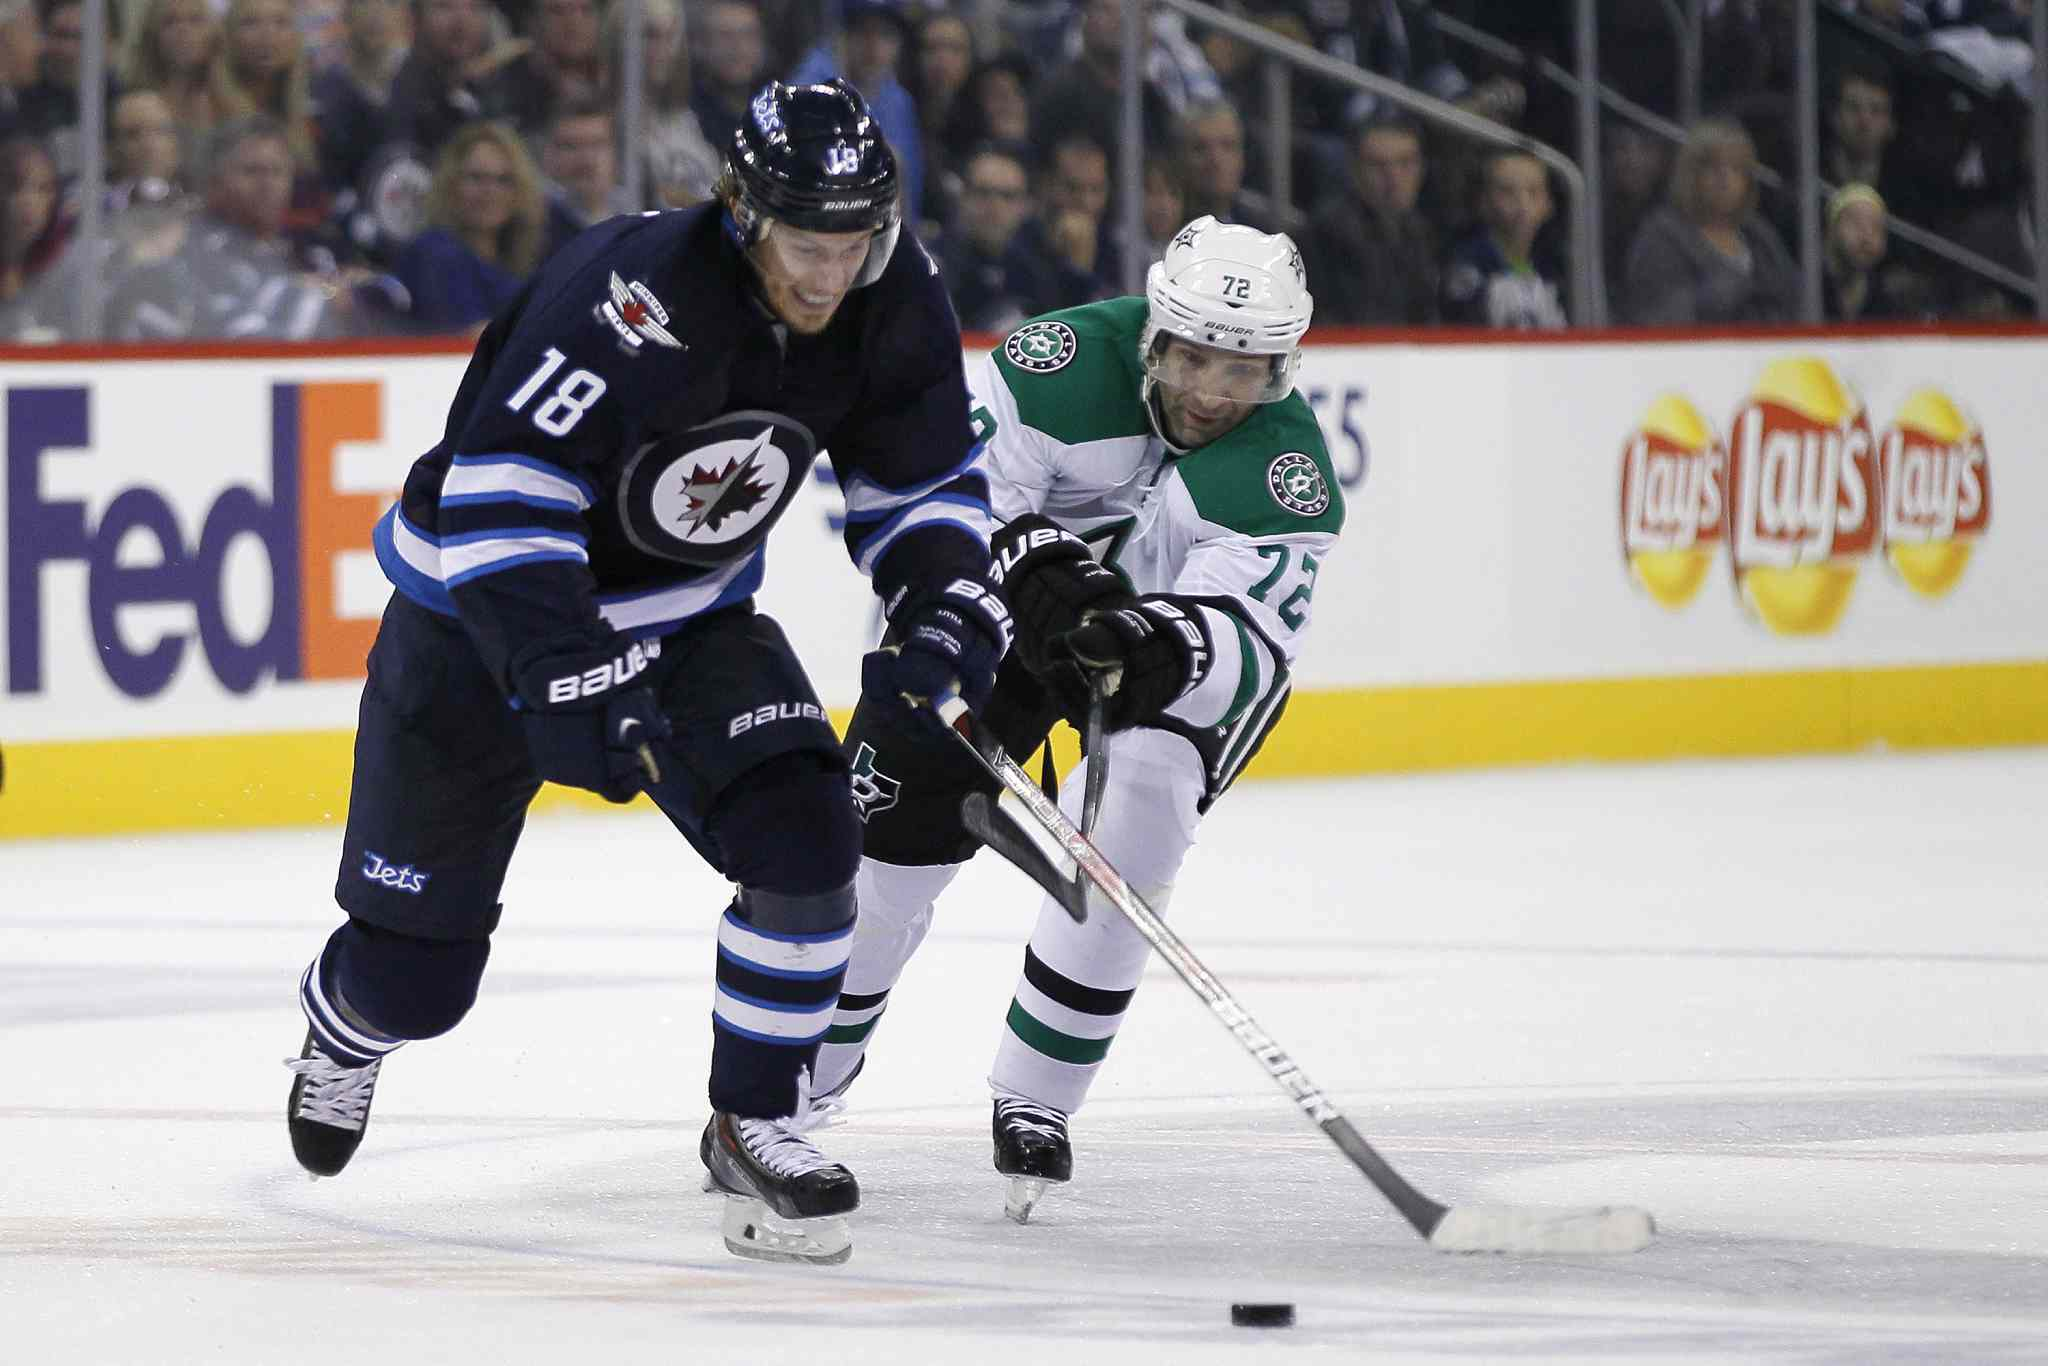 Bryan Little and Dallas Stars forward Erik Cole (72) race for the puck during the second period.